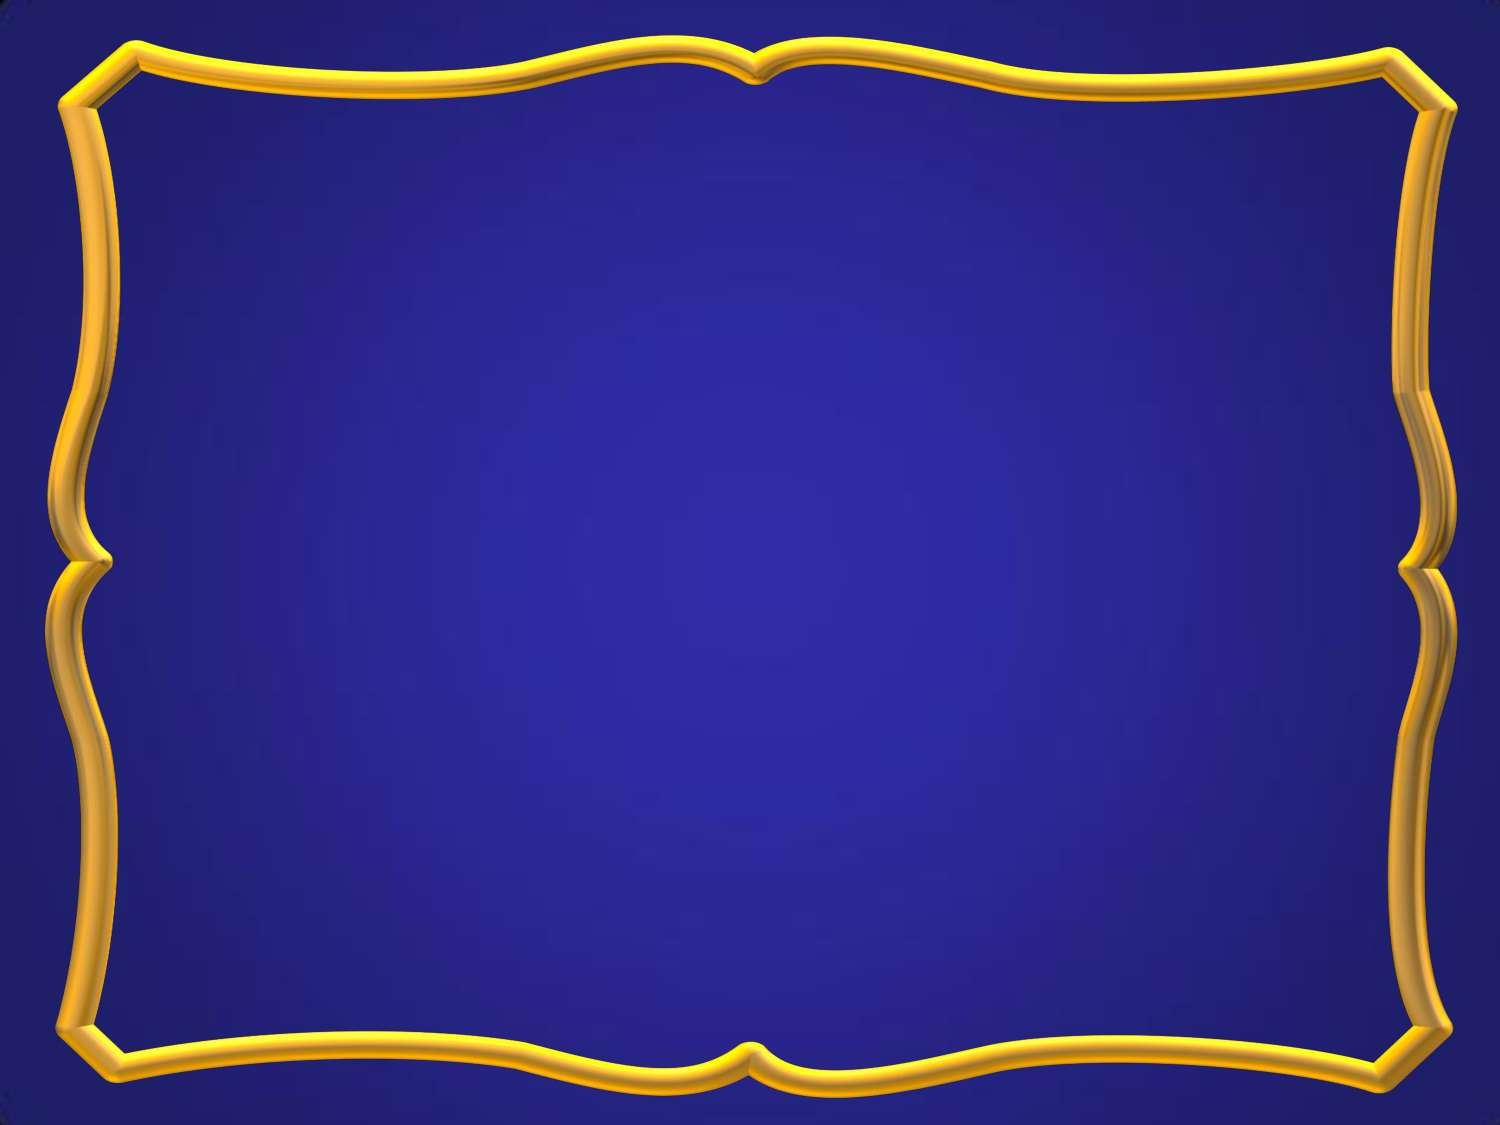 Blue gold frame PowerPoint background Available in 1500x1125 this 1500x1125